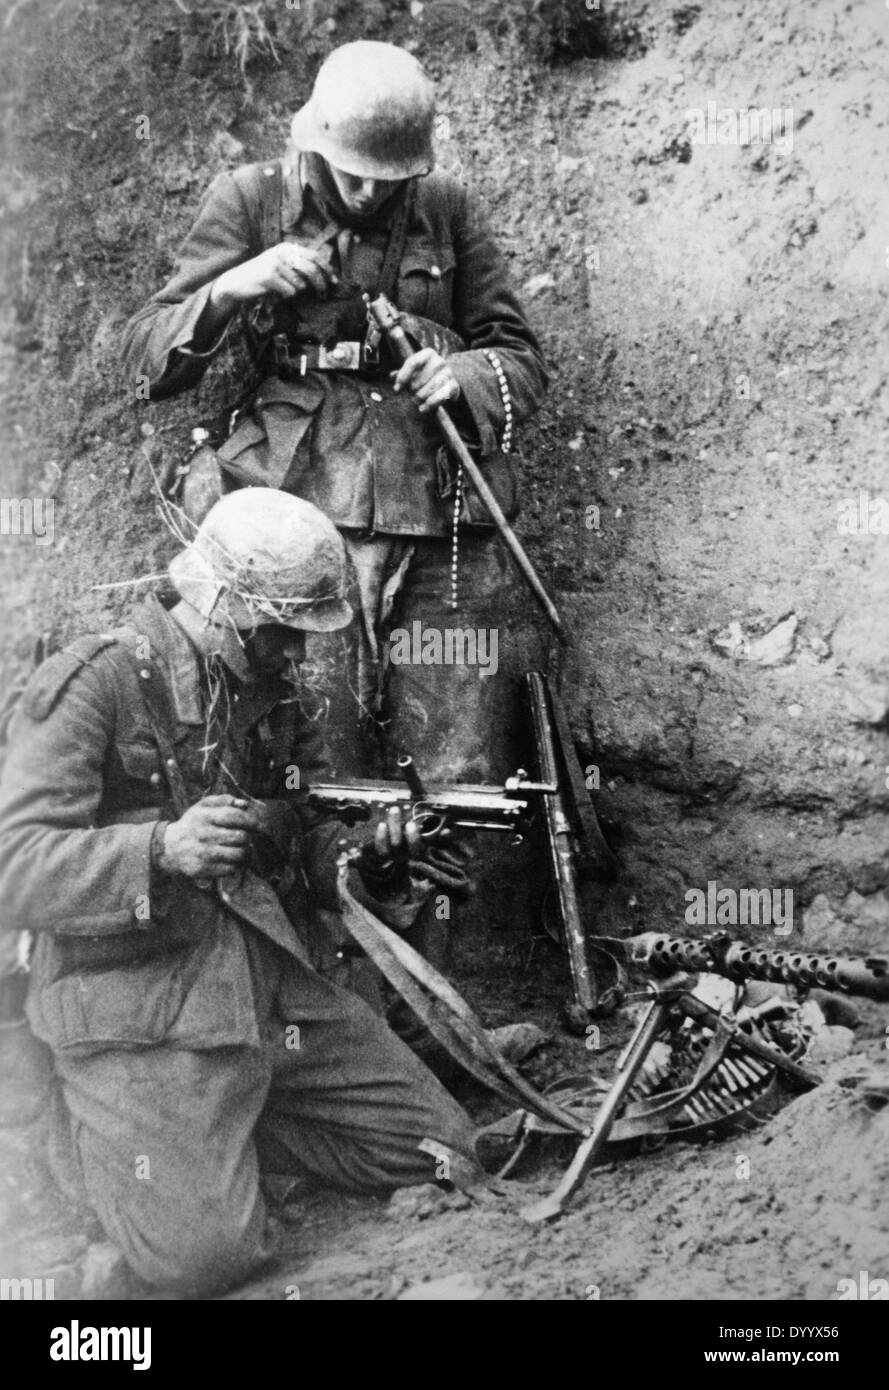 German soldiers with a machine gun in the Crimea, 1941 - Stock Image